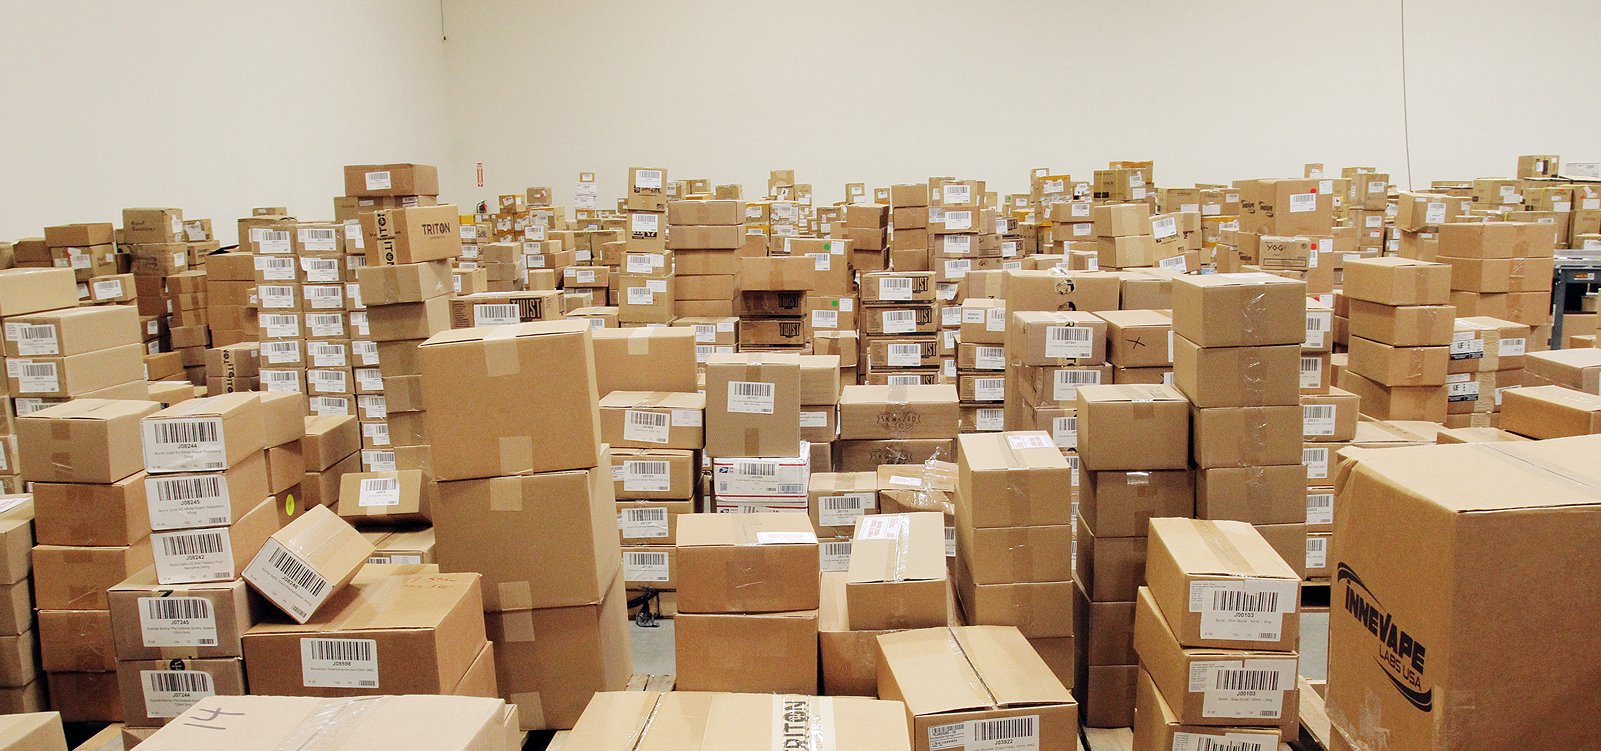 returns-and-exchange-boxes.jpg